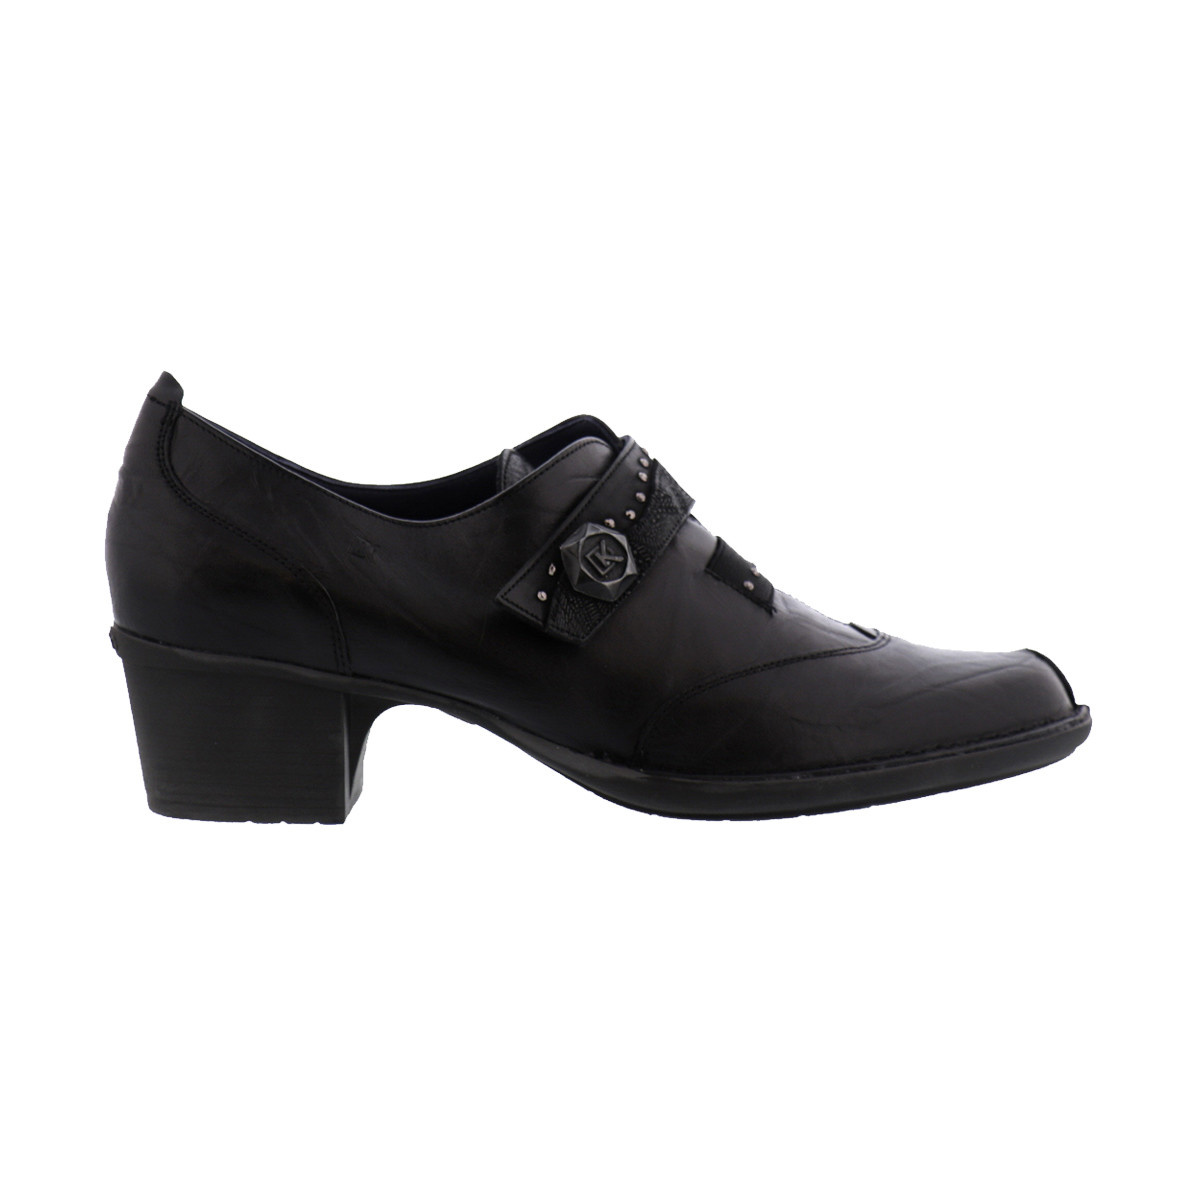 Dorking Dorking Women's D7558 Black